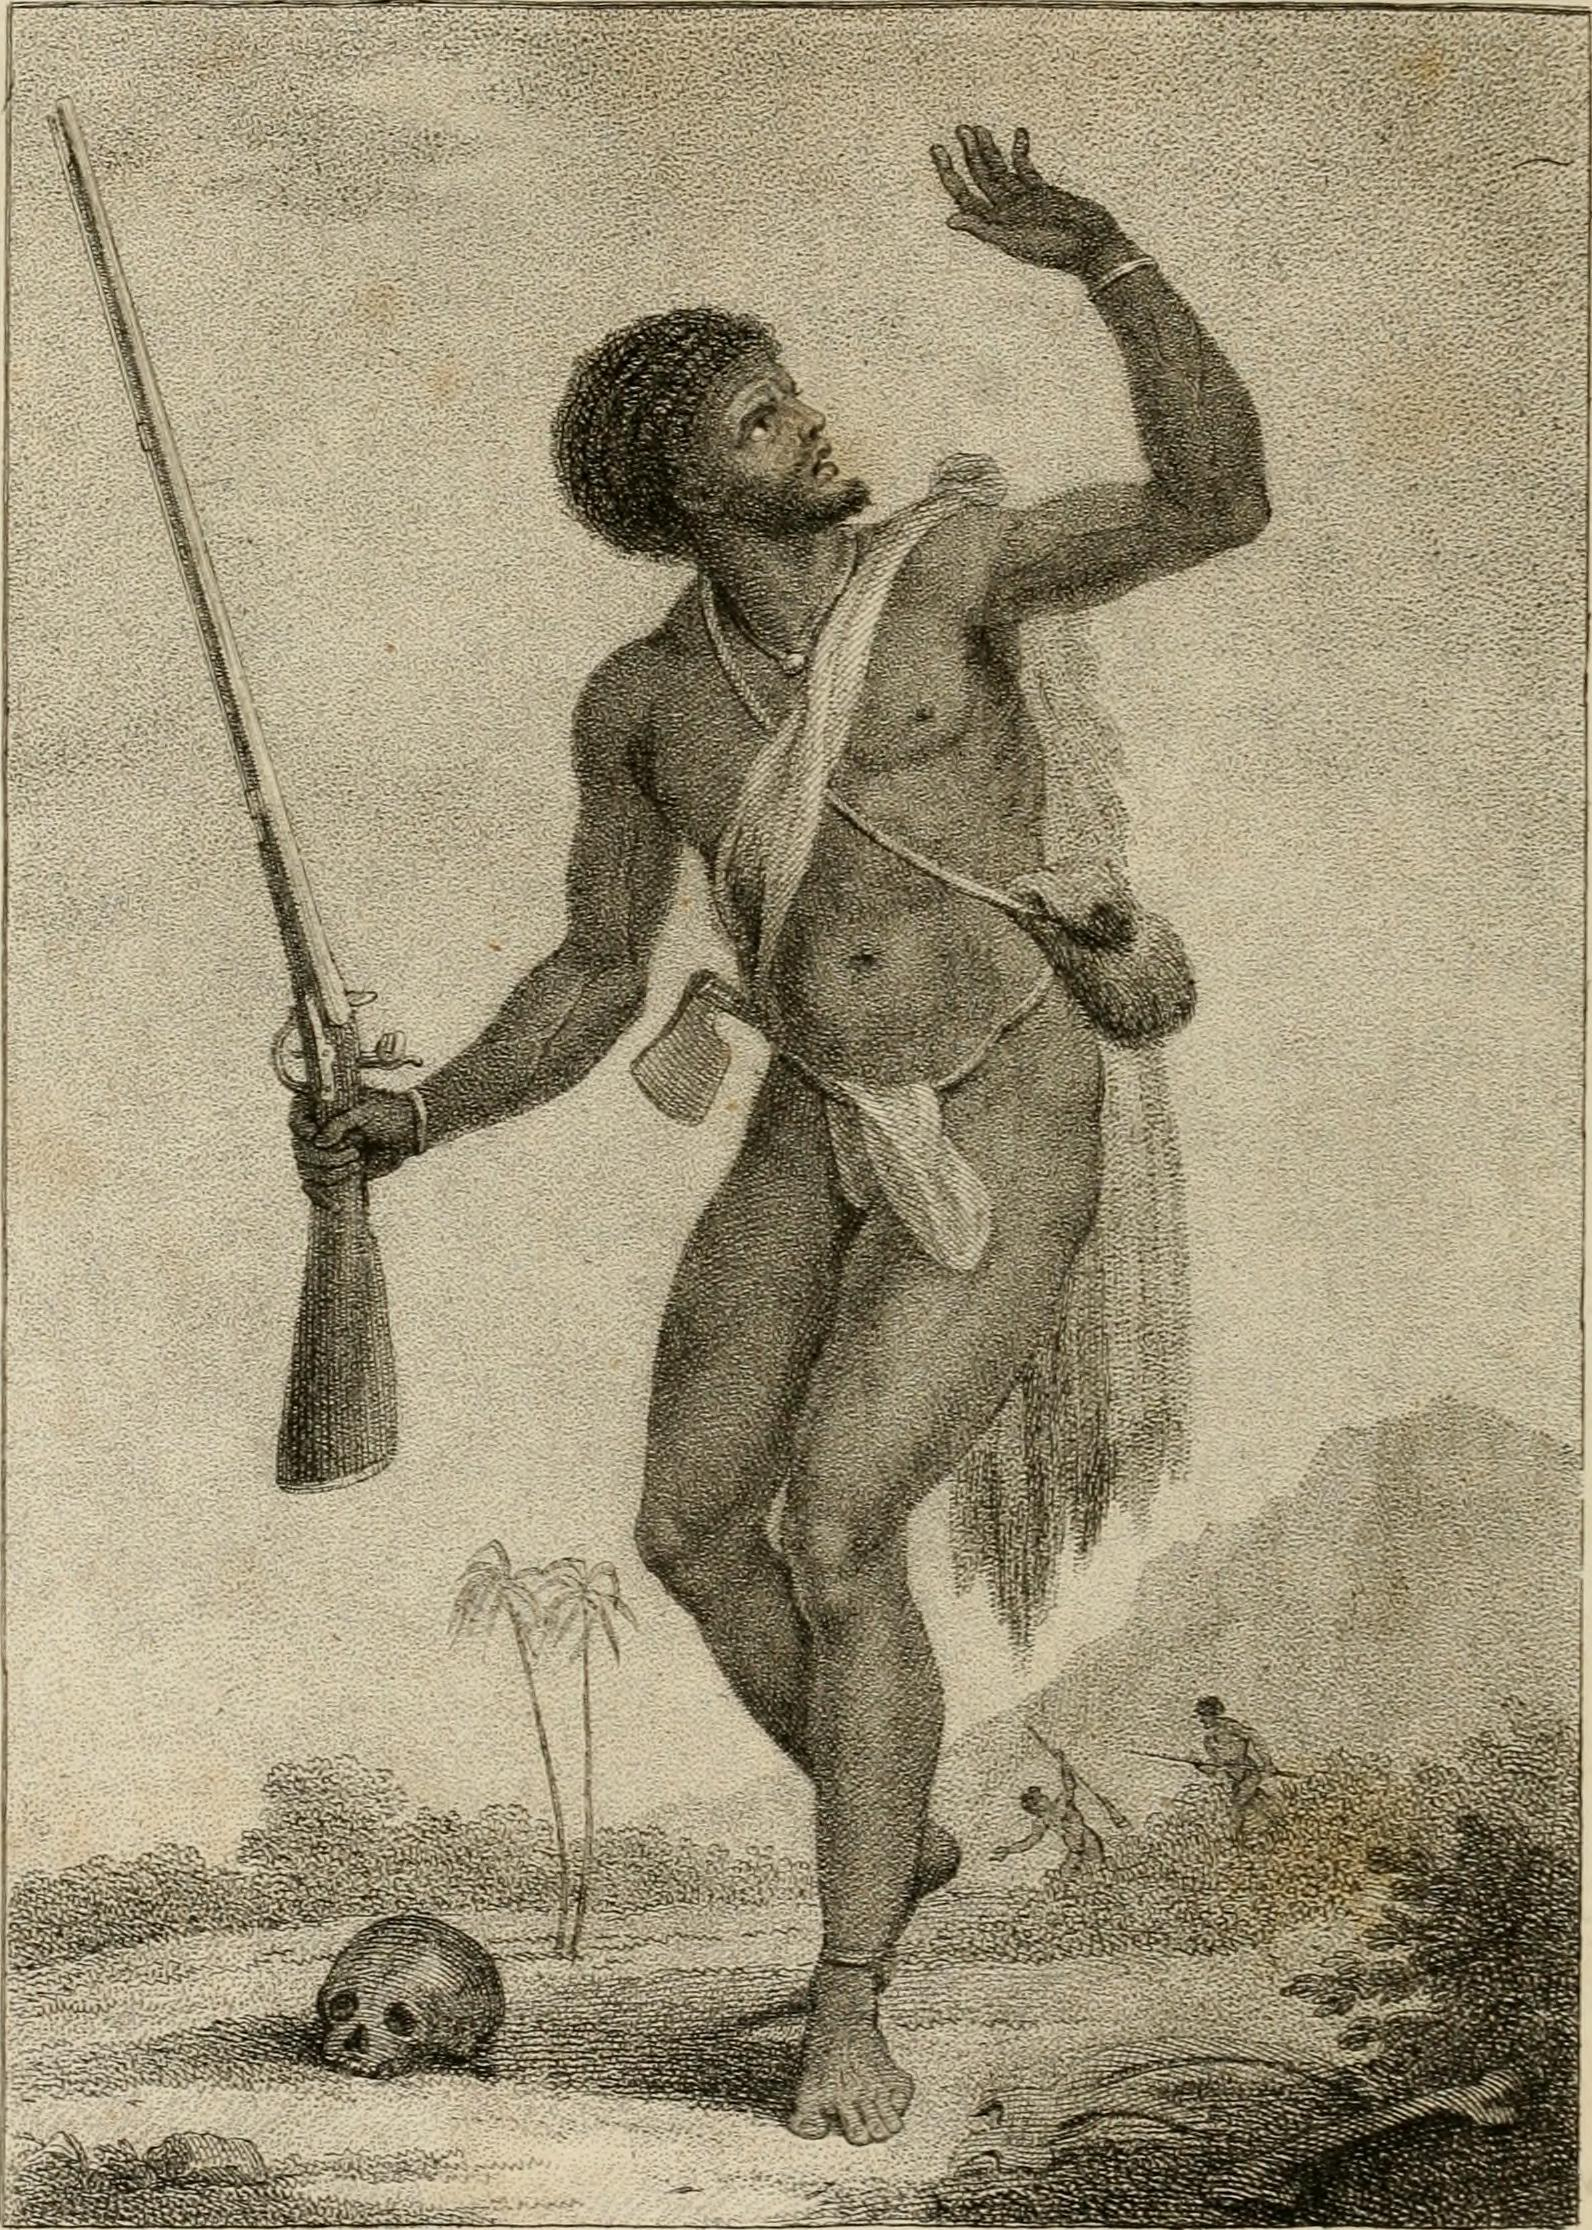 Marron in Suriname, circa 1775